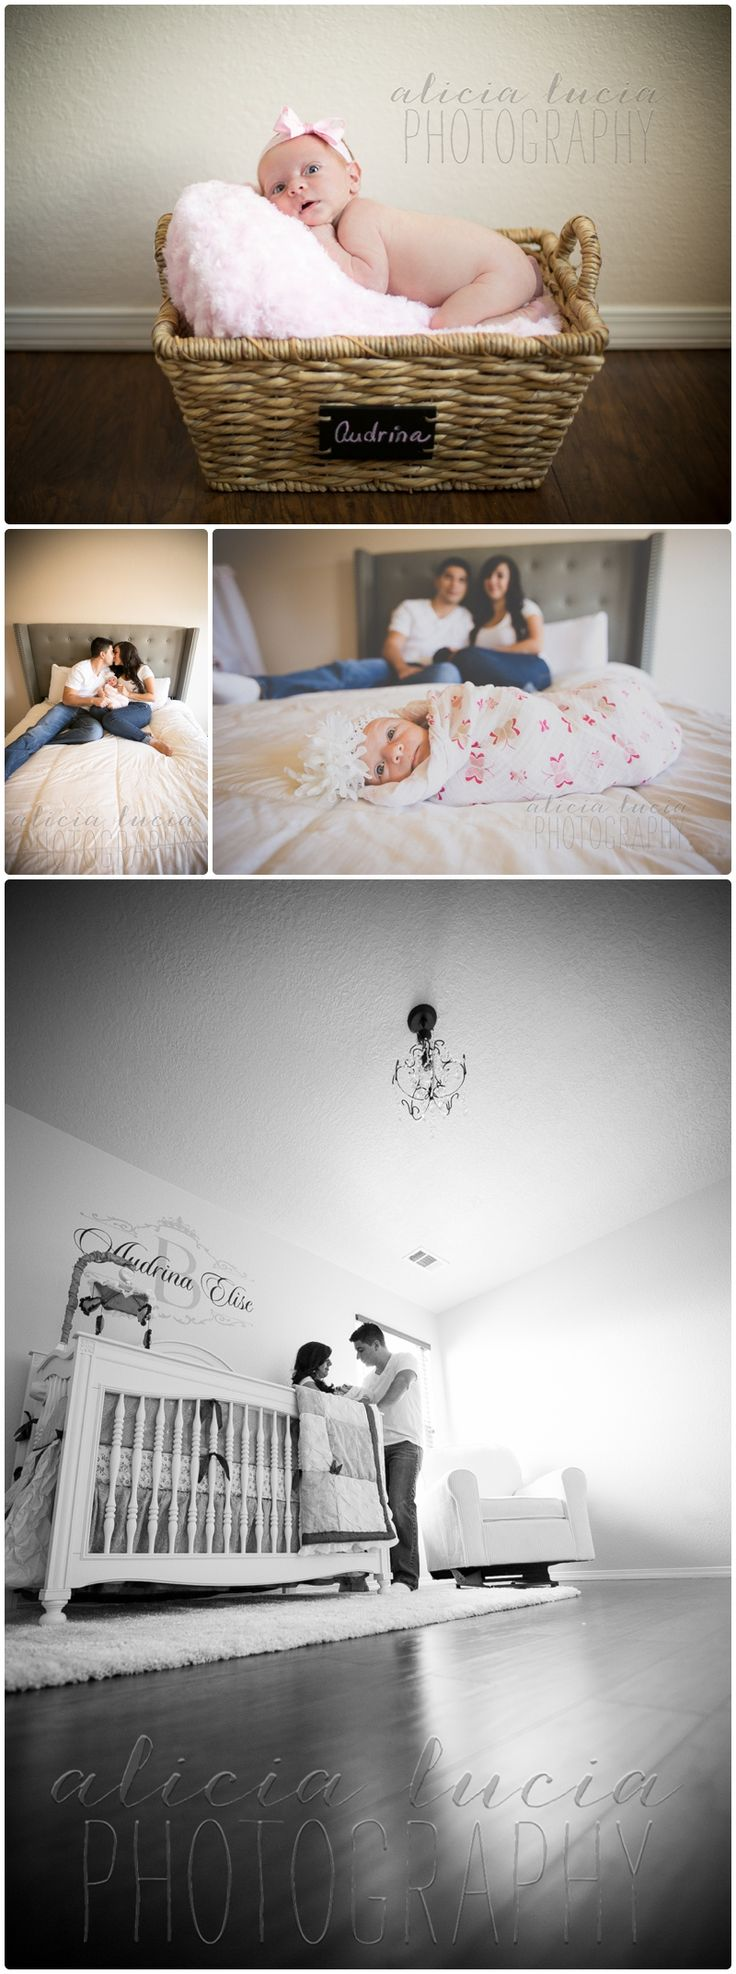 261 best Mommy & baby photography images on Pinterest | Baby photos ...